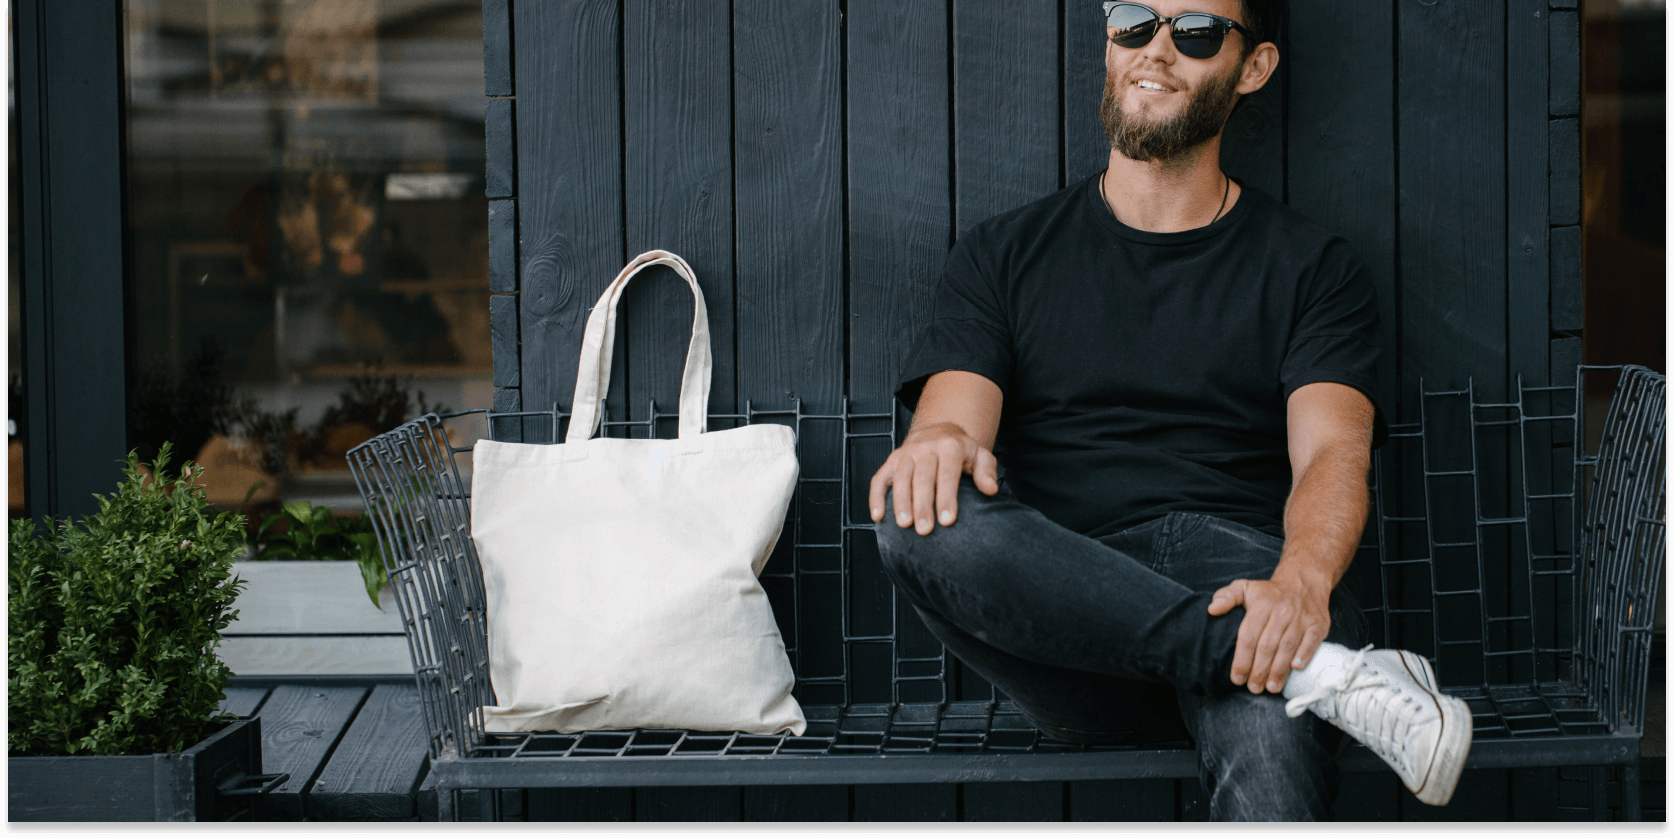 Personalized reusable grocery bags to market in 2020